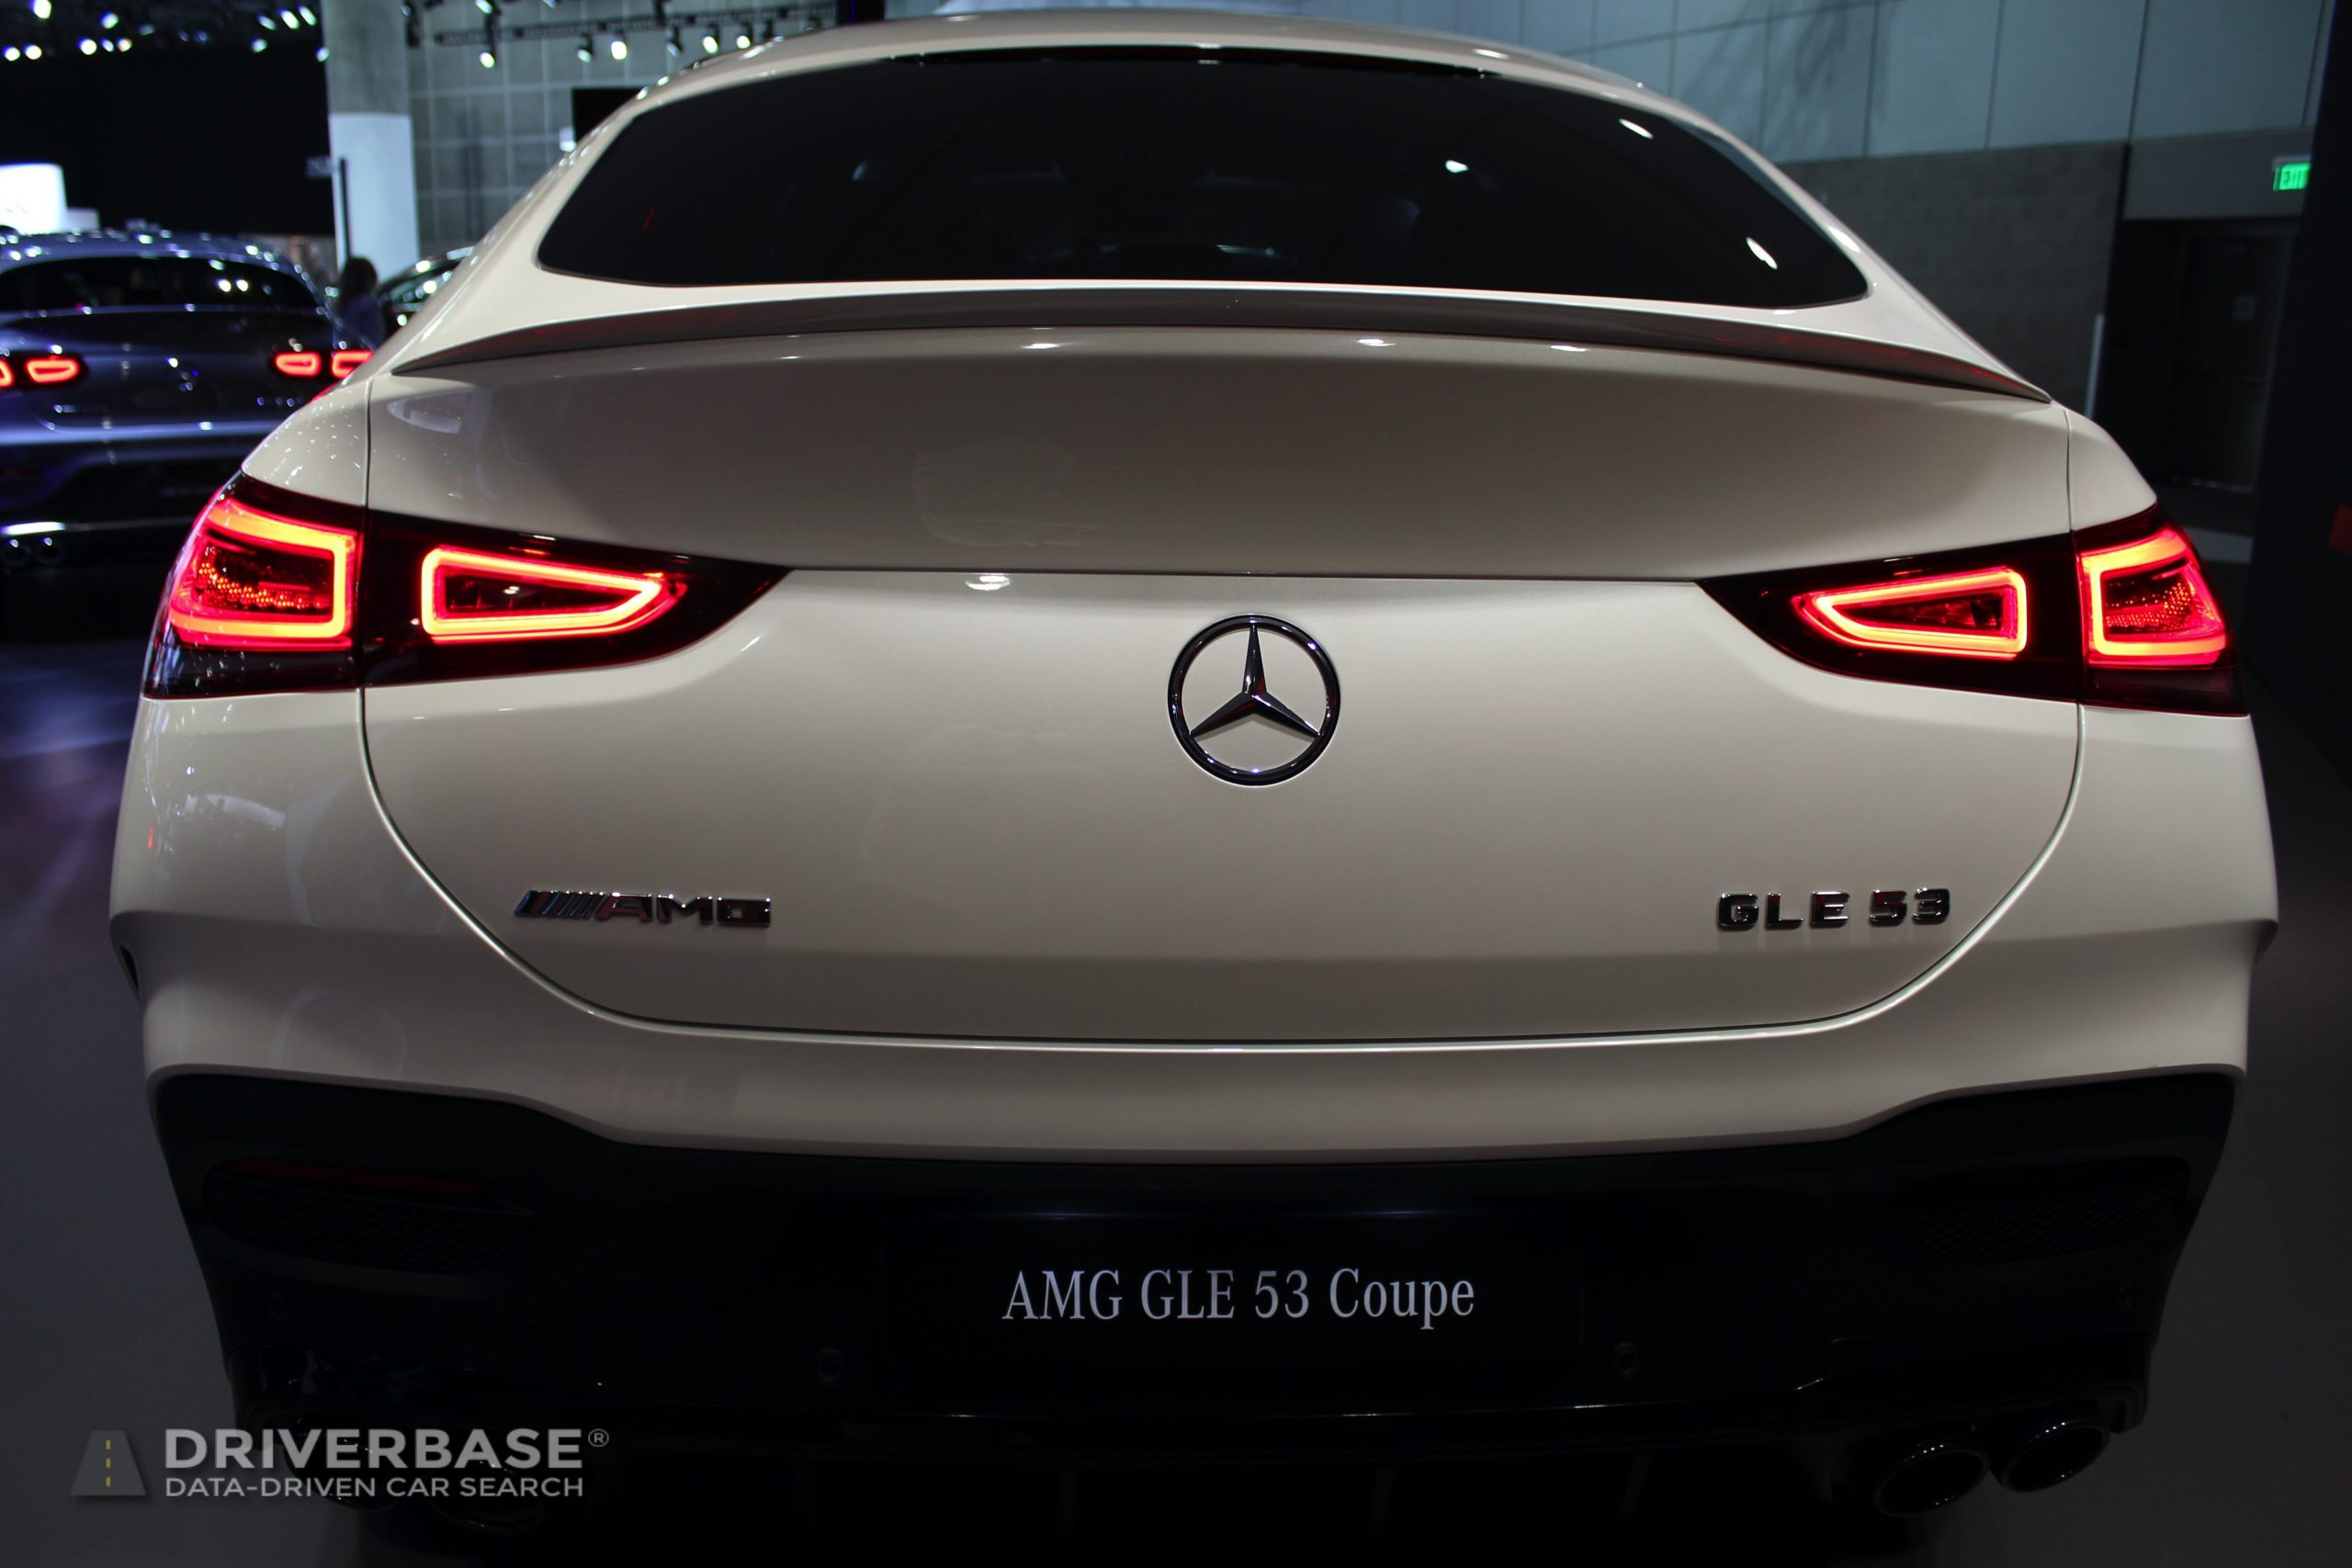 2020 Mercedes-Benz AMG GLE 53 Coupe at the 2019 Los Angeles Auto Show